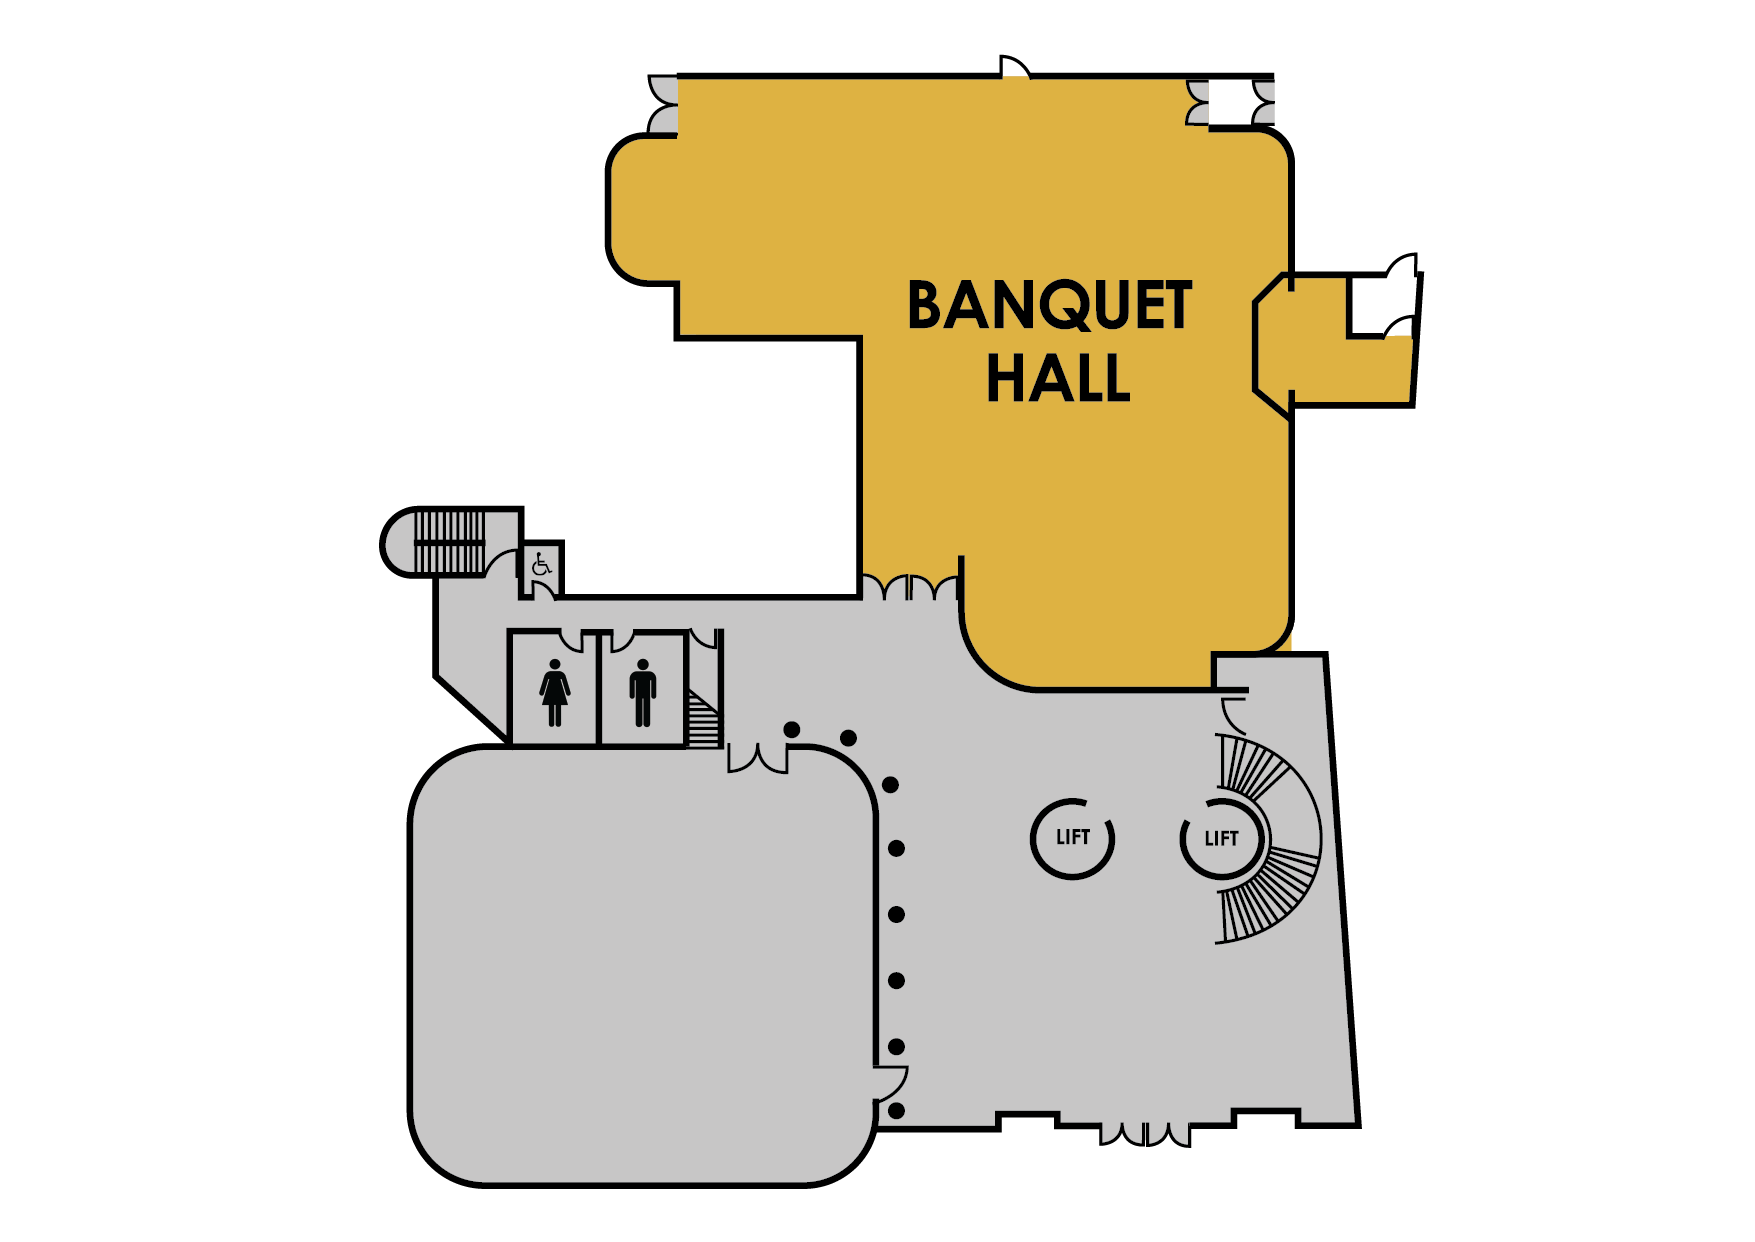 Banquet Hall map